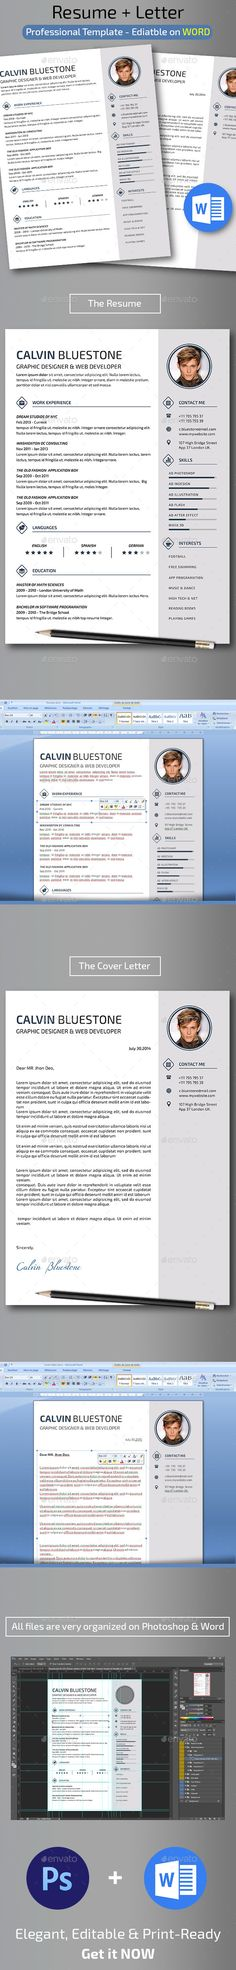 resume template Use this template to save time and ensure that job - most professional resume template